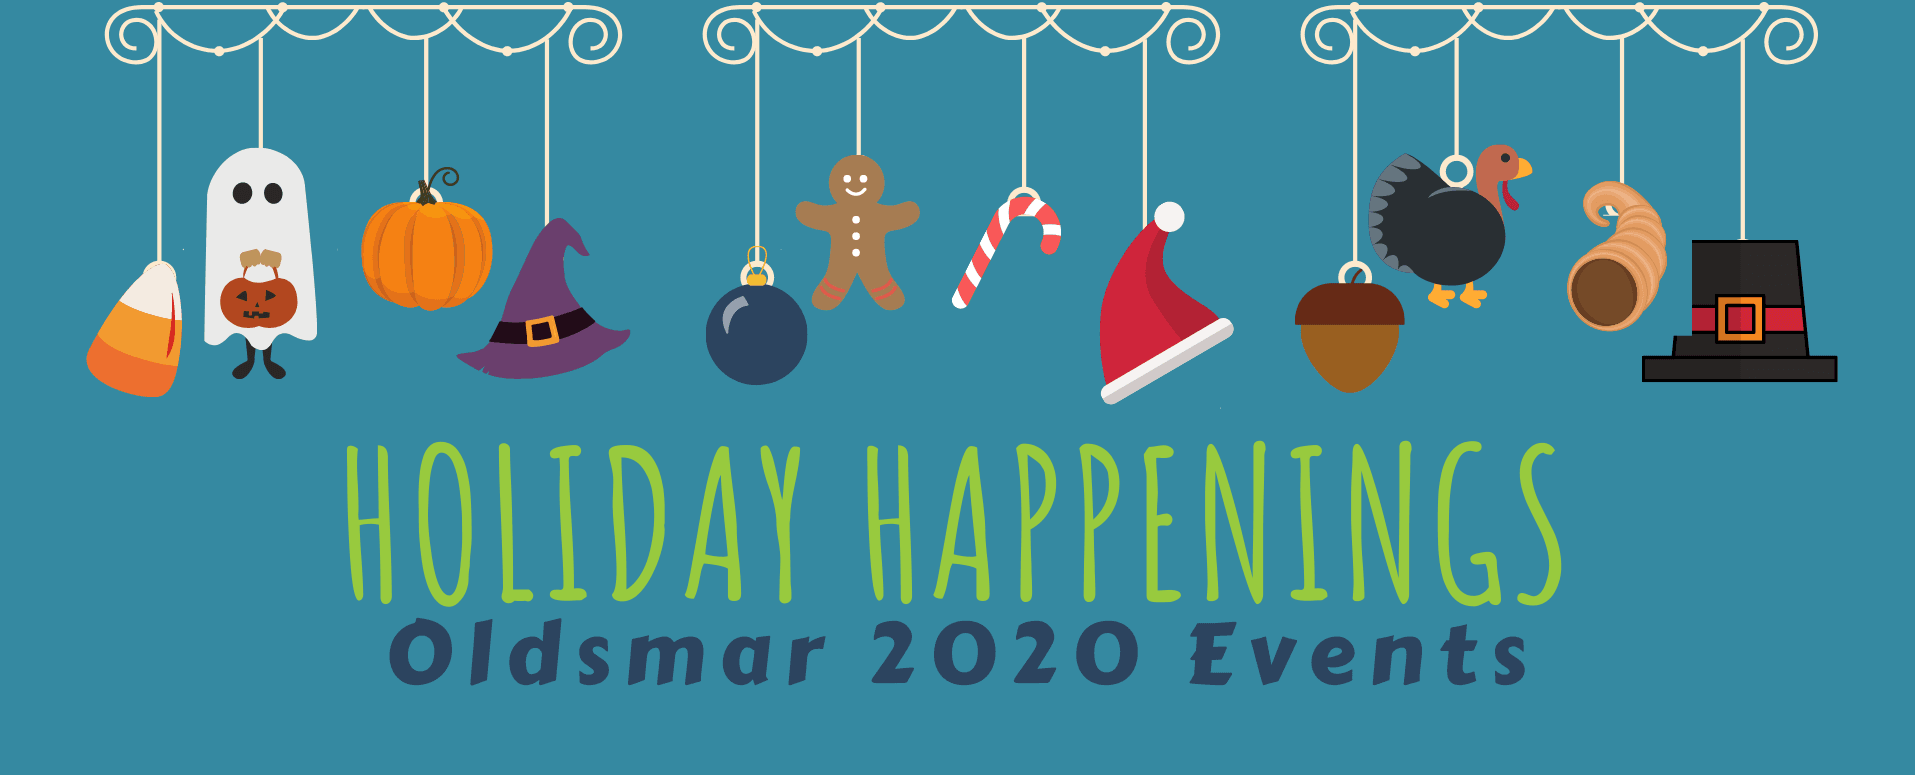 2020 holiday happenings